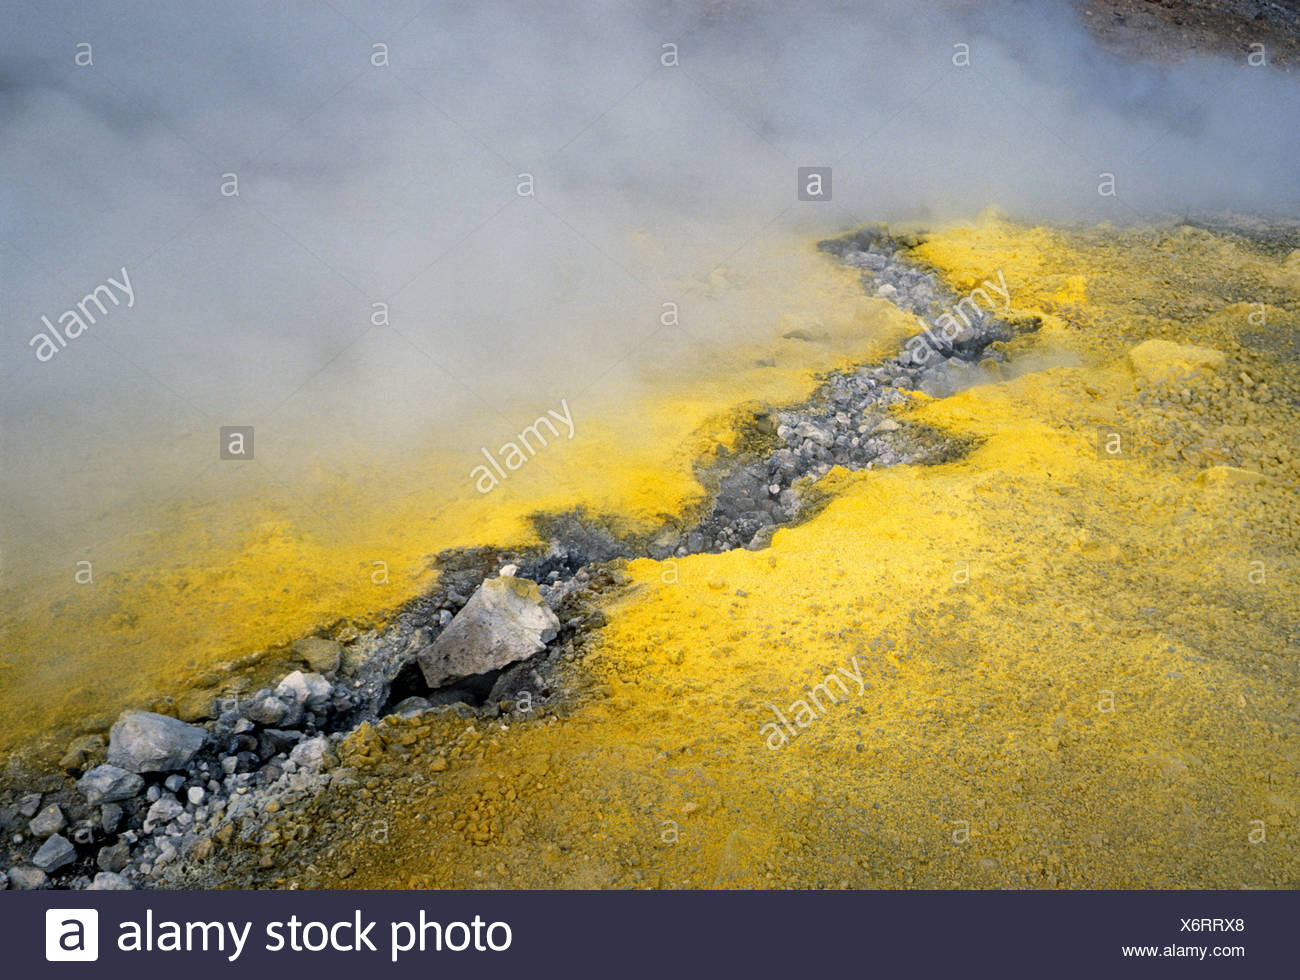 Sulphuric vapours from a crack in the earth, Vulcano, Aeolian Islands, Italy, Europe - Stock Image